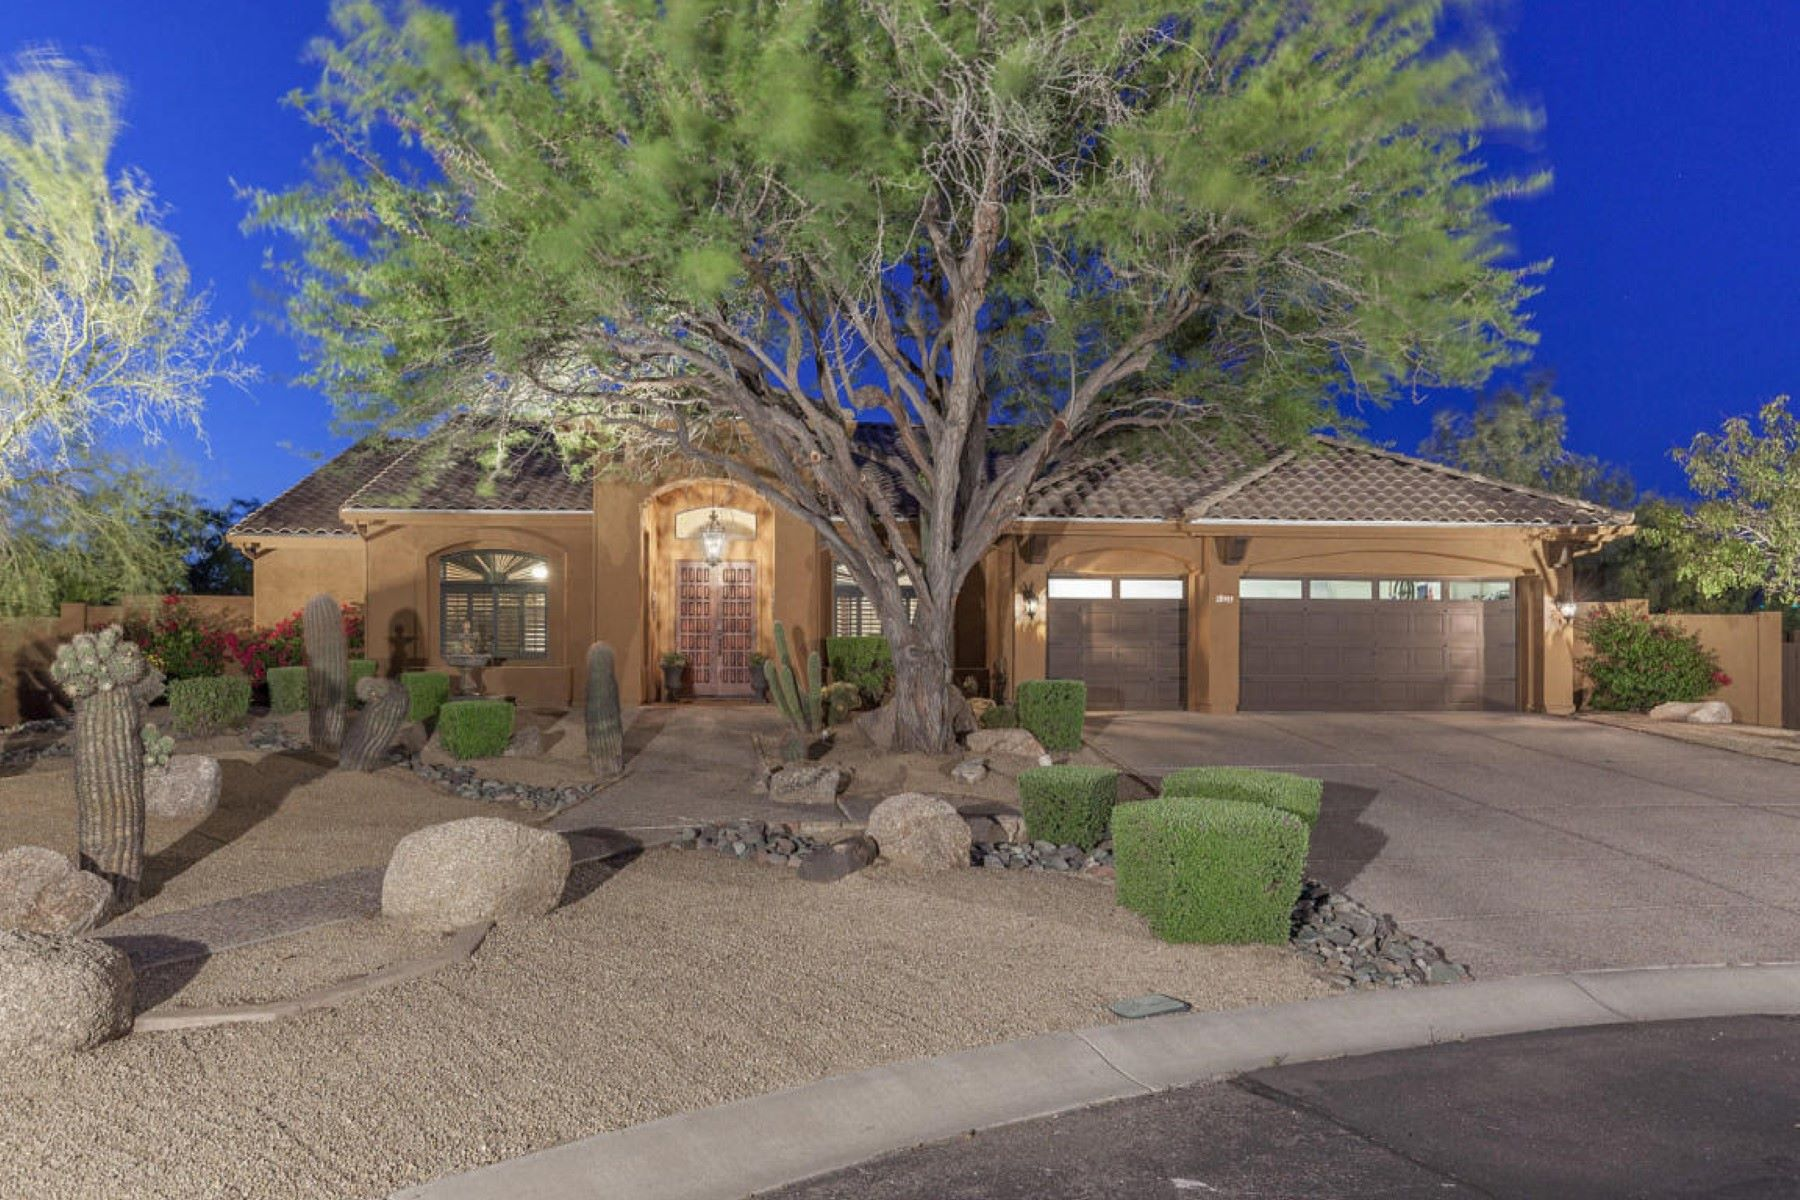 Single Family Home for Sale at Elegant and extensively remodeled North Scottsdale semi custom home 24909 N 87th Way Scottsdale, Arizona, 85255 United States